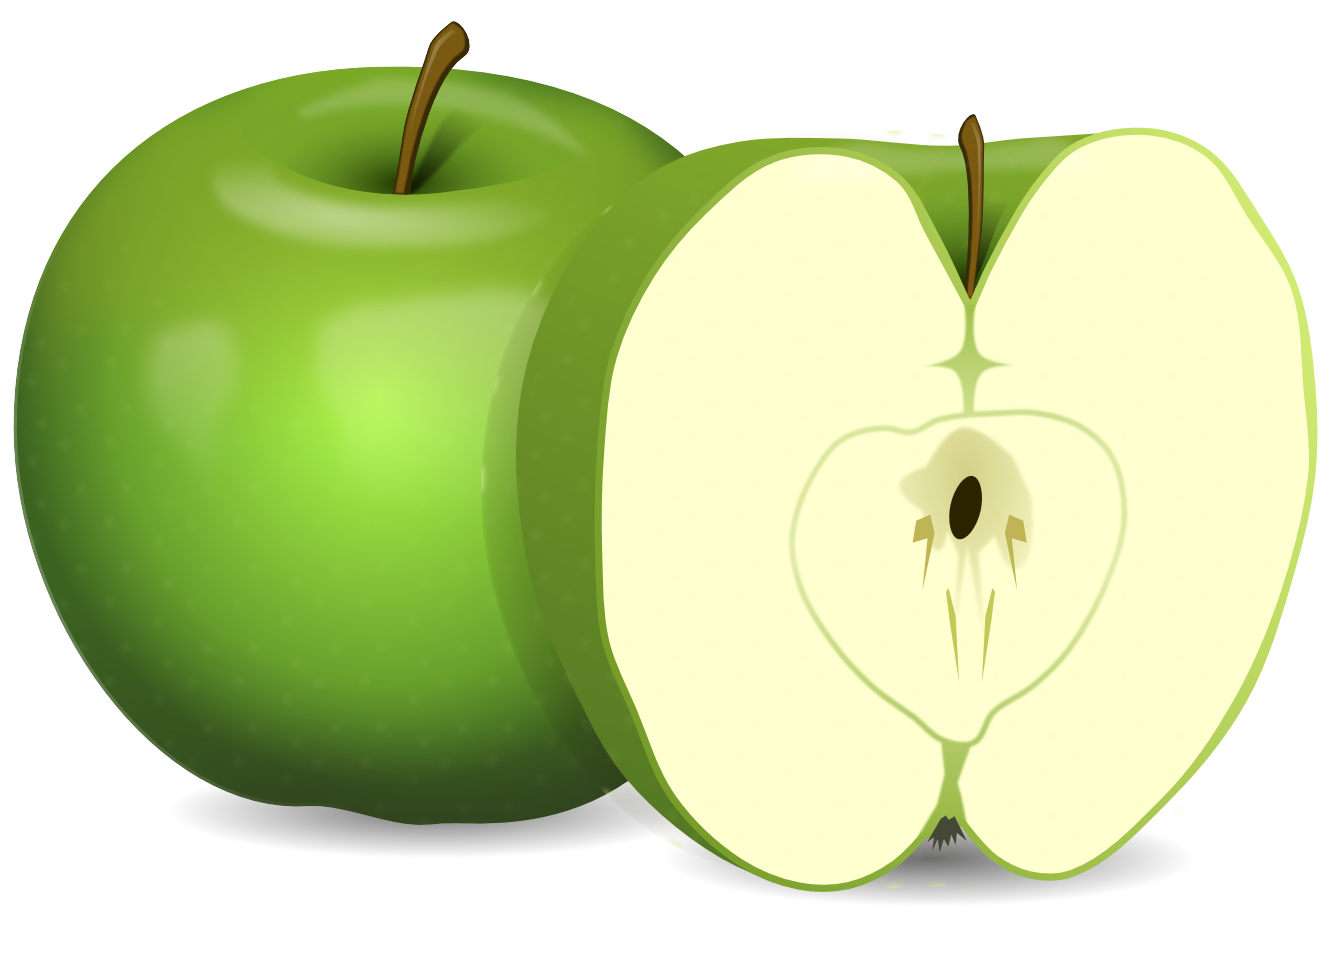 Apple core clipart free svg transparent download Clip Art: Apple Clip Art Images svg transparent download